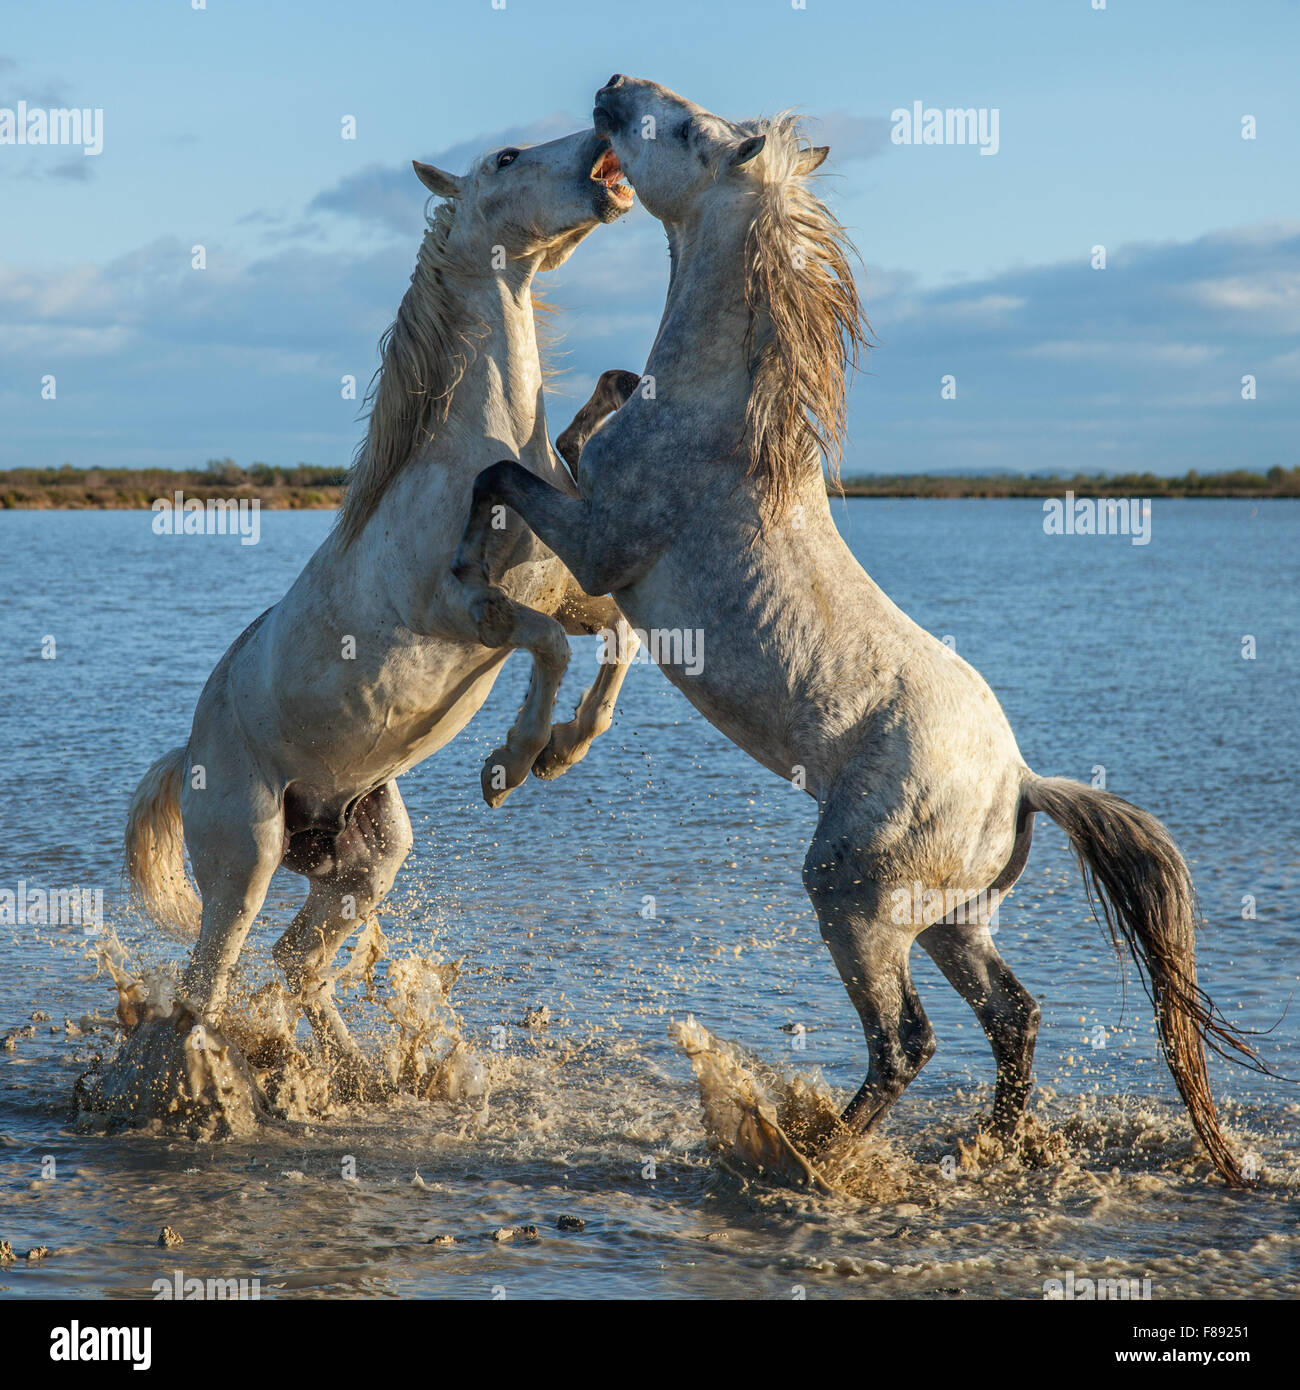 two stallions fighting in the marshes of the Camargue, France - Stock Image